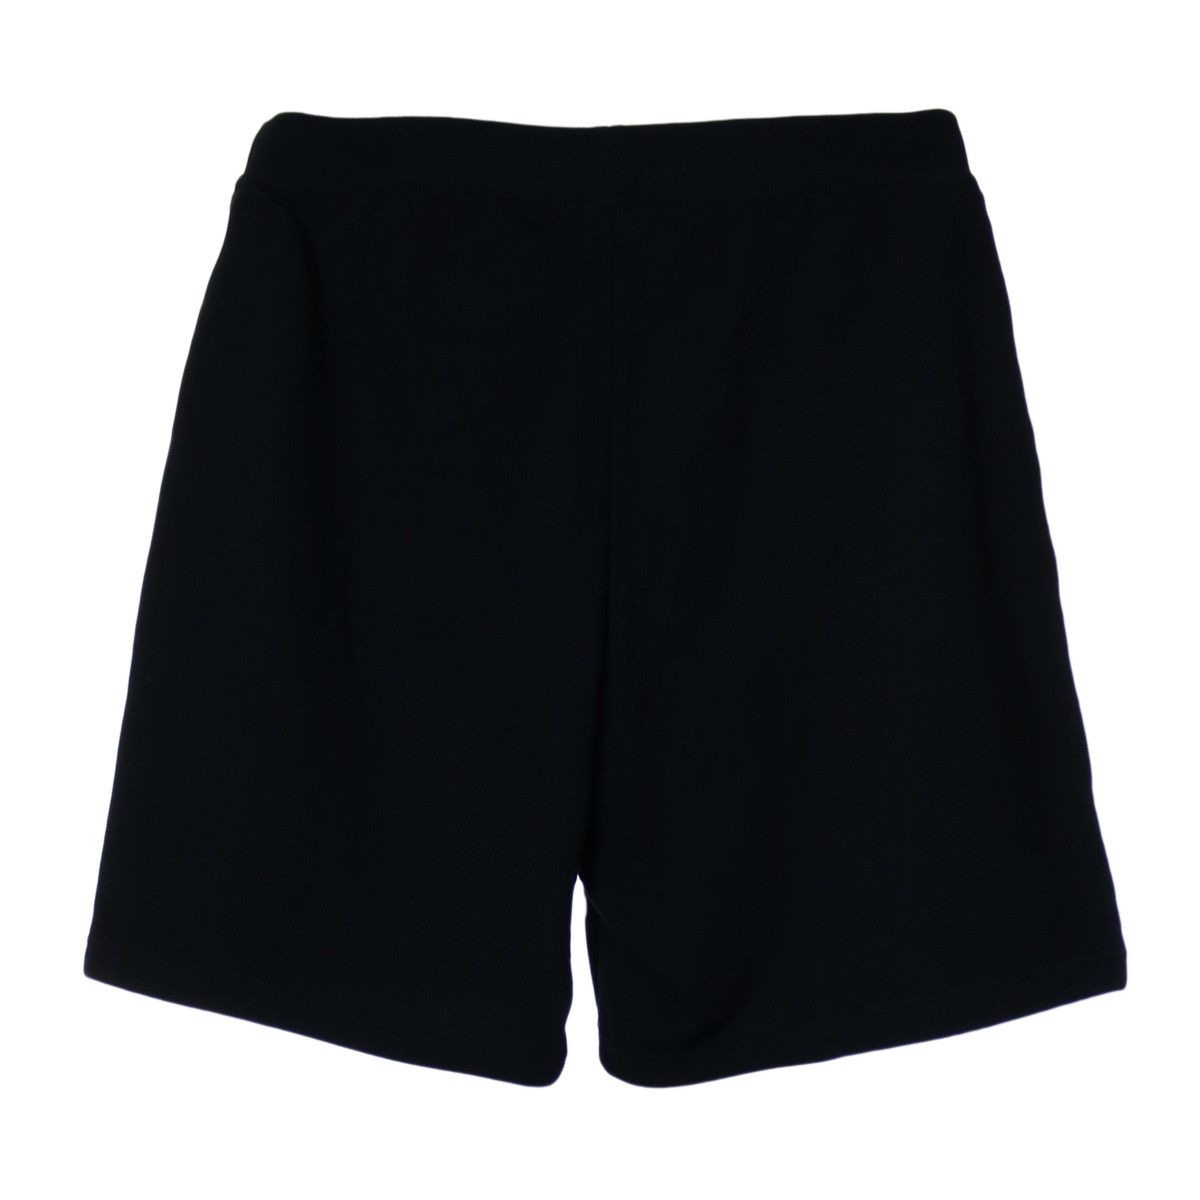 S.S.A.F.E IMPACT LIGHT SWEAT SHORTS